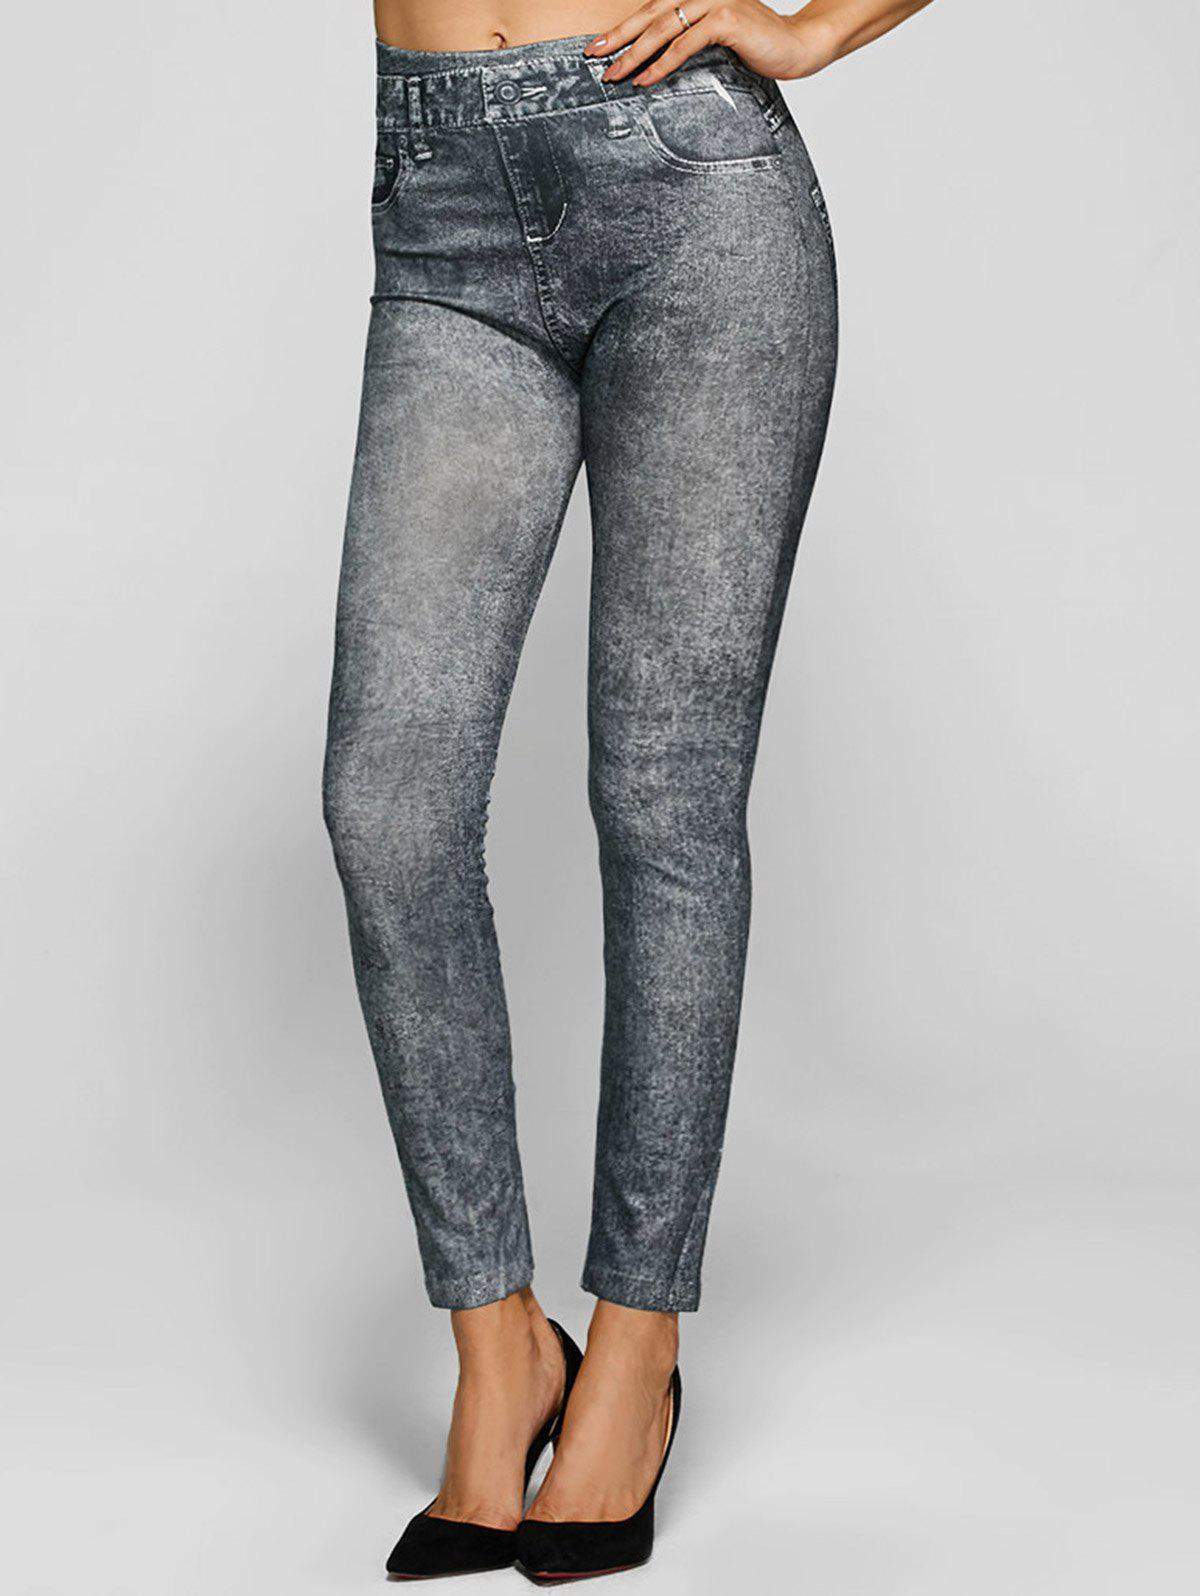 Skinny Jeggings Faux Jean Leggings